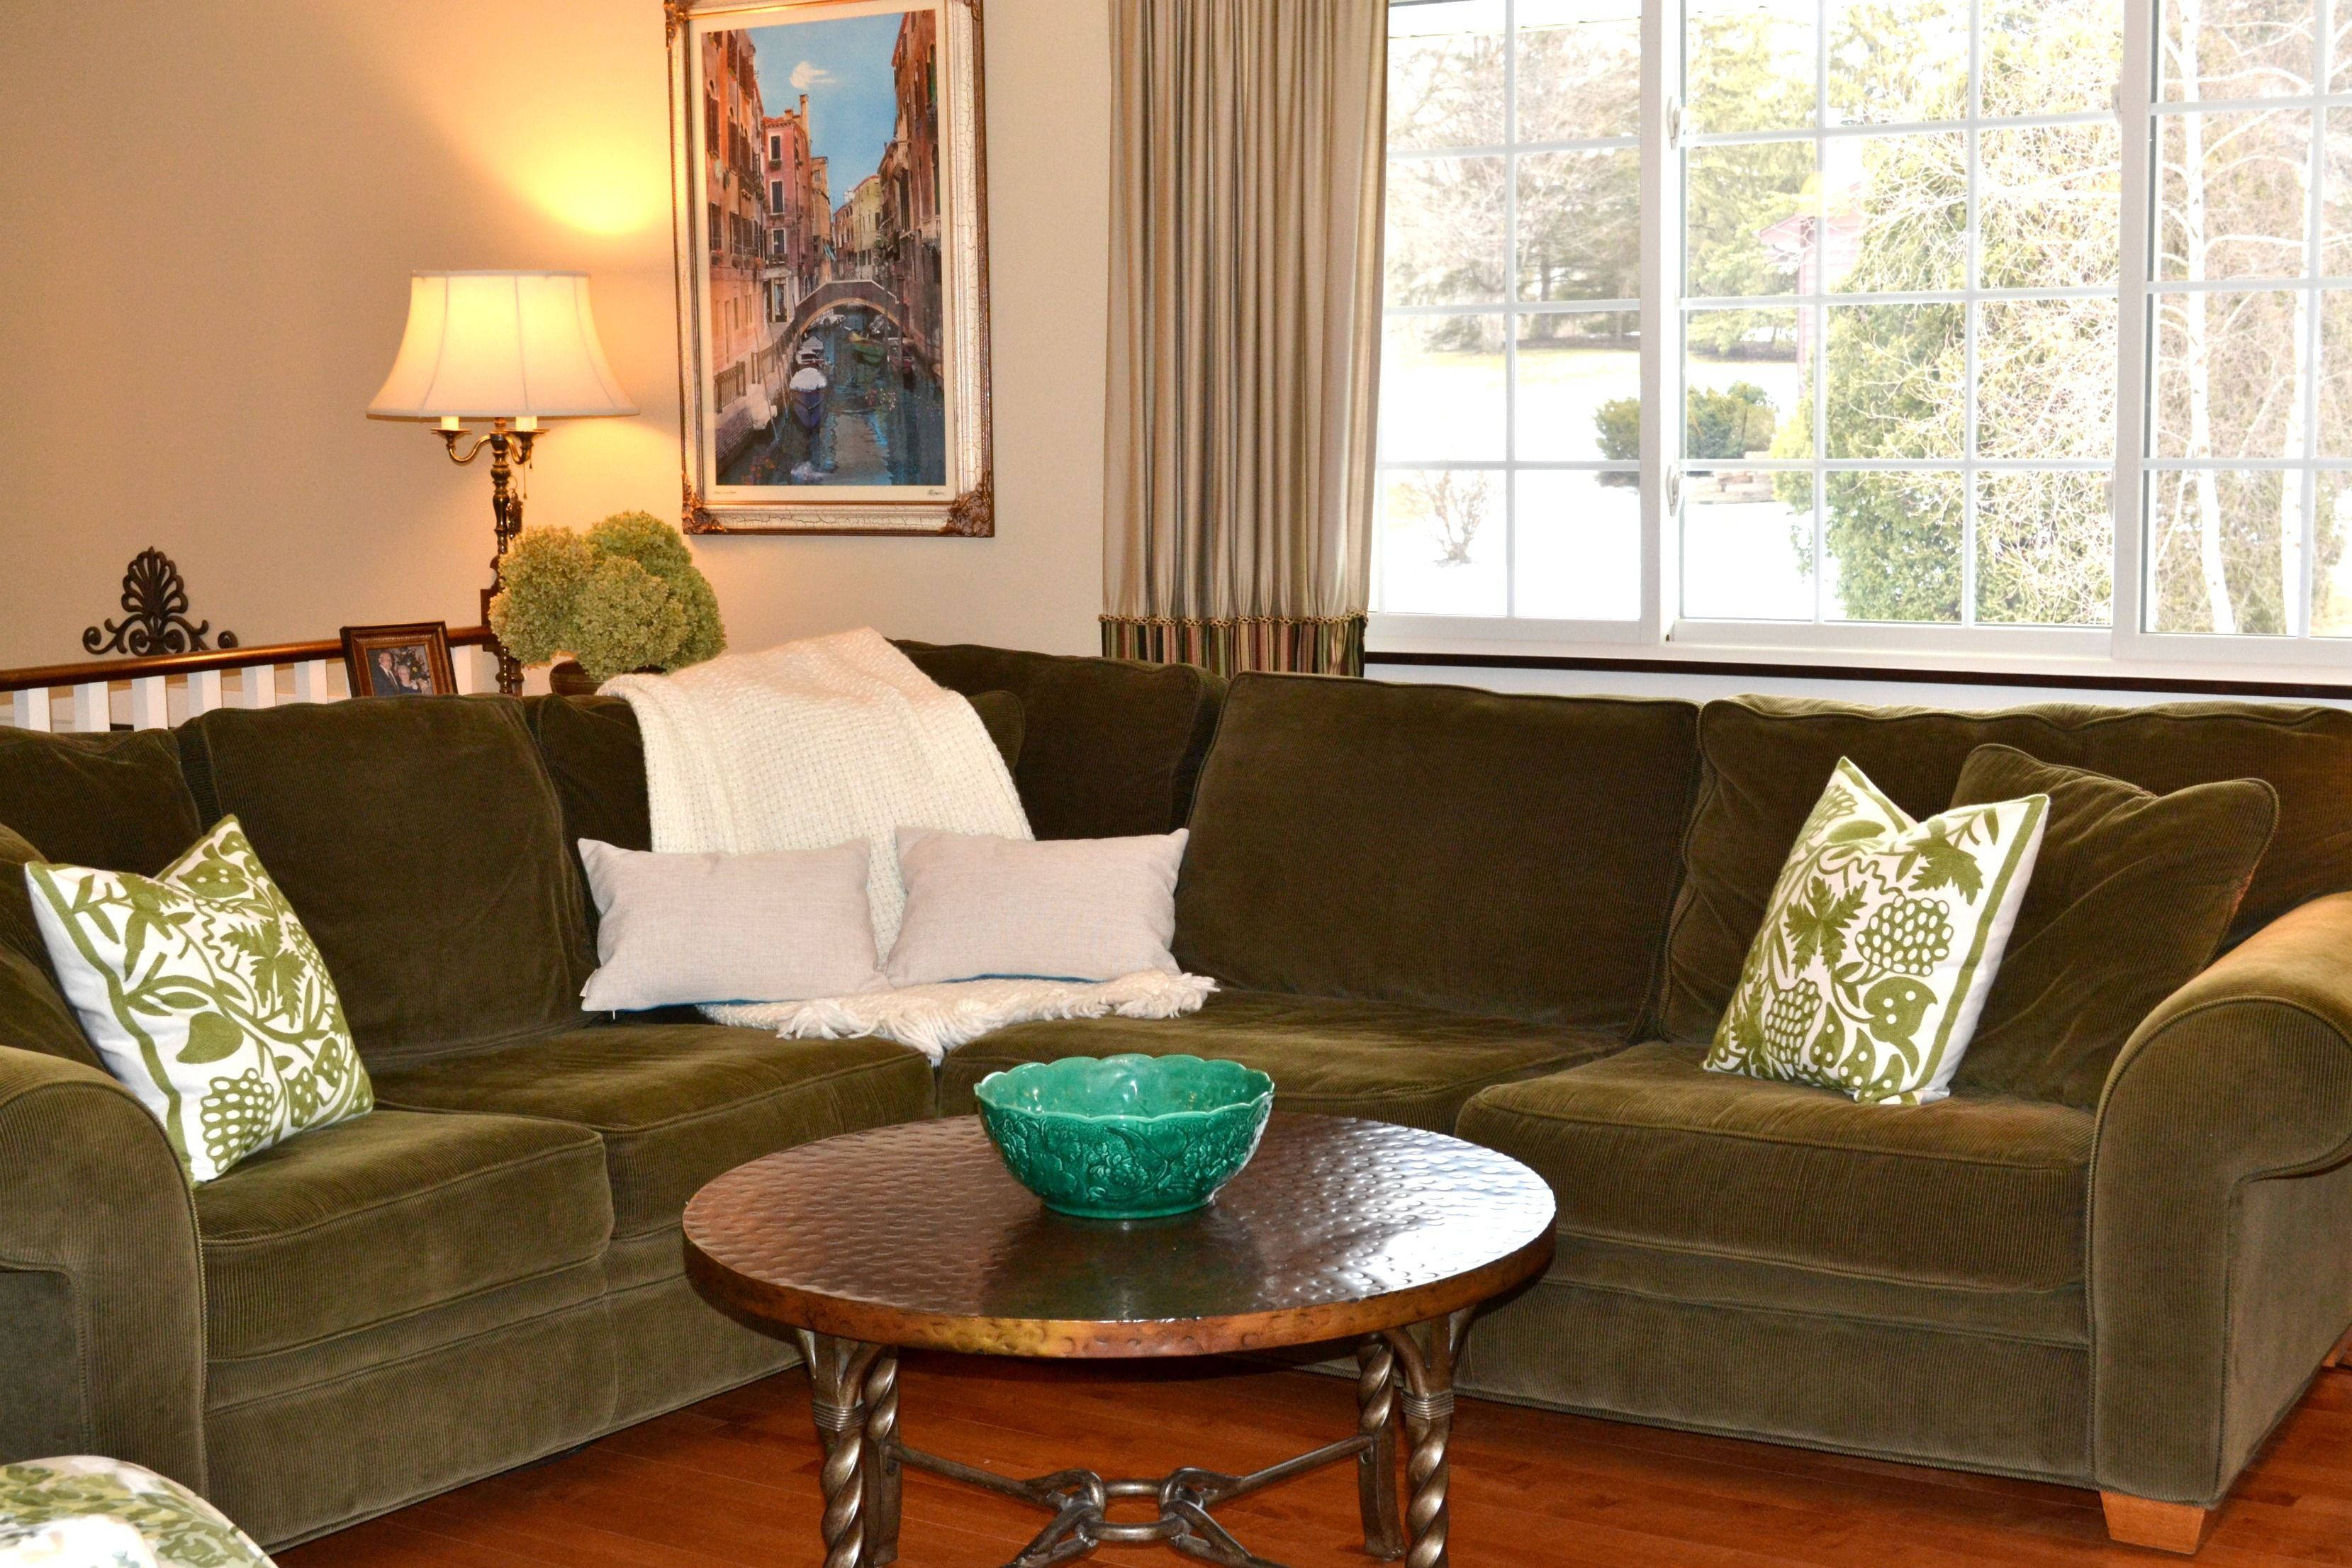 Living Room redesign by Linen & Twine Home Staging.